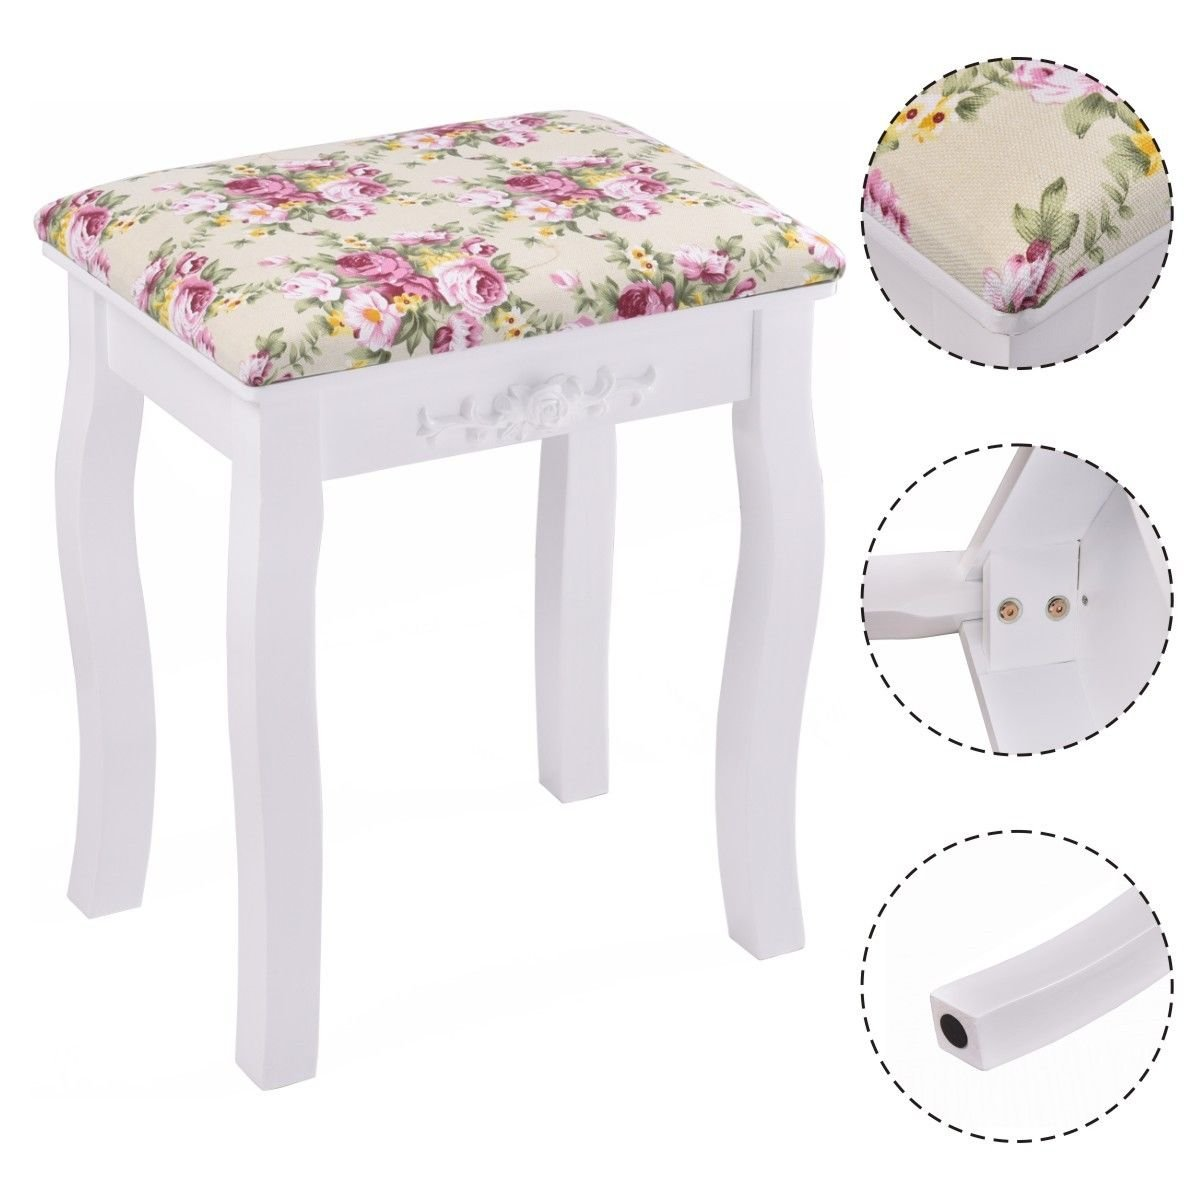 New White Vanity Wood Dressing Stool Padded Chair Makeup Piano Seat W/ Rose cushion